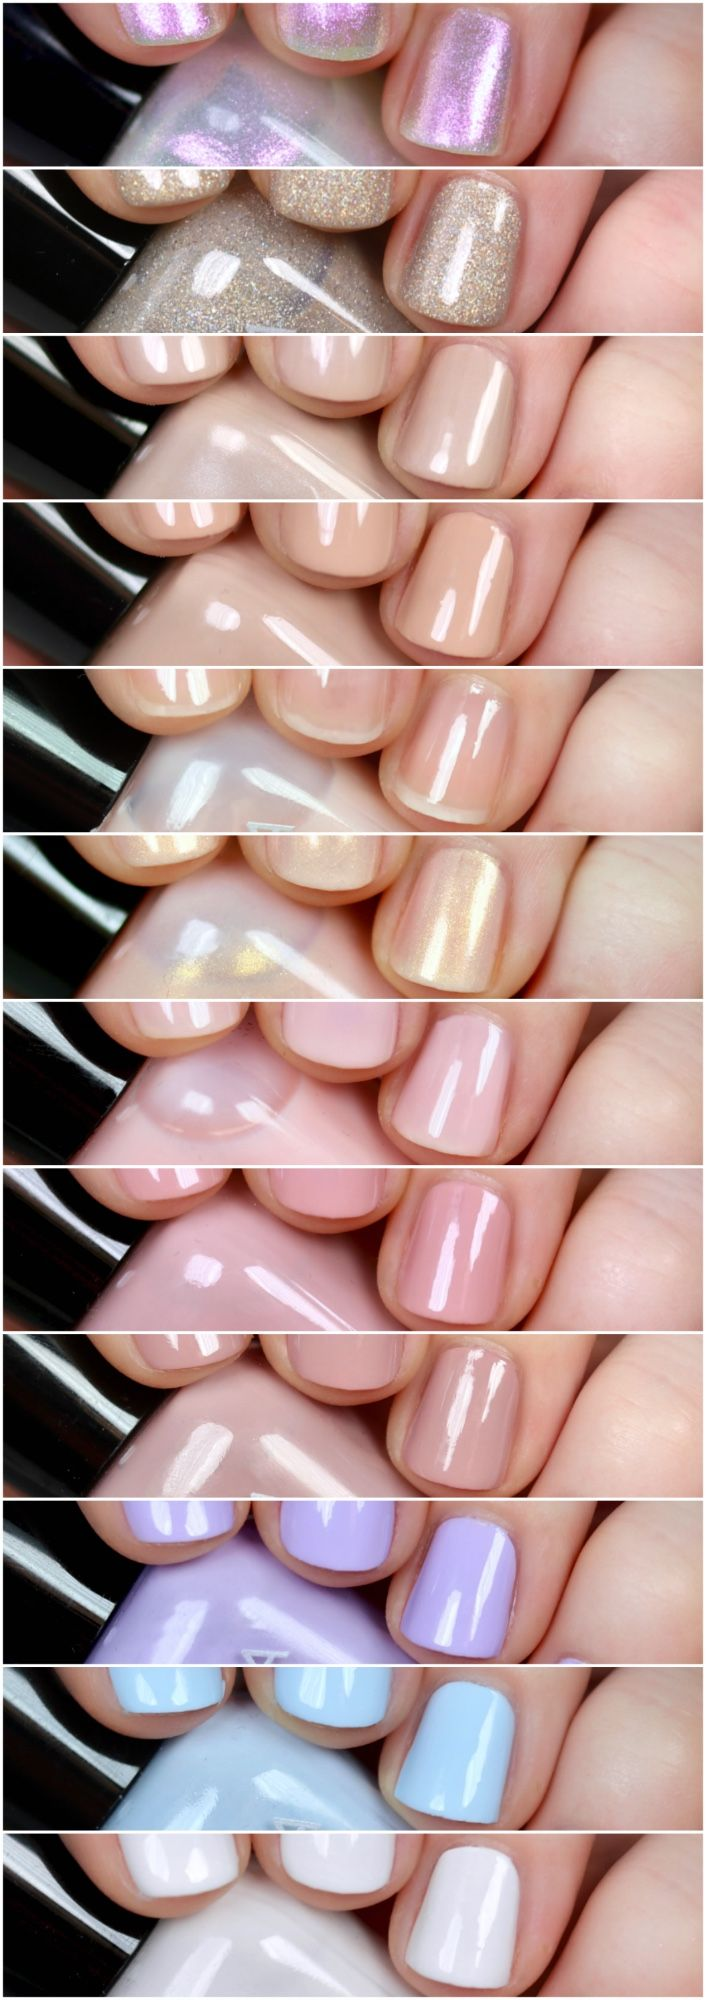 Zoya Bridal Bliss Collection